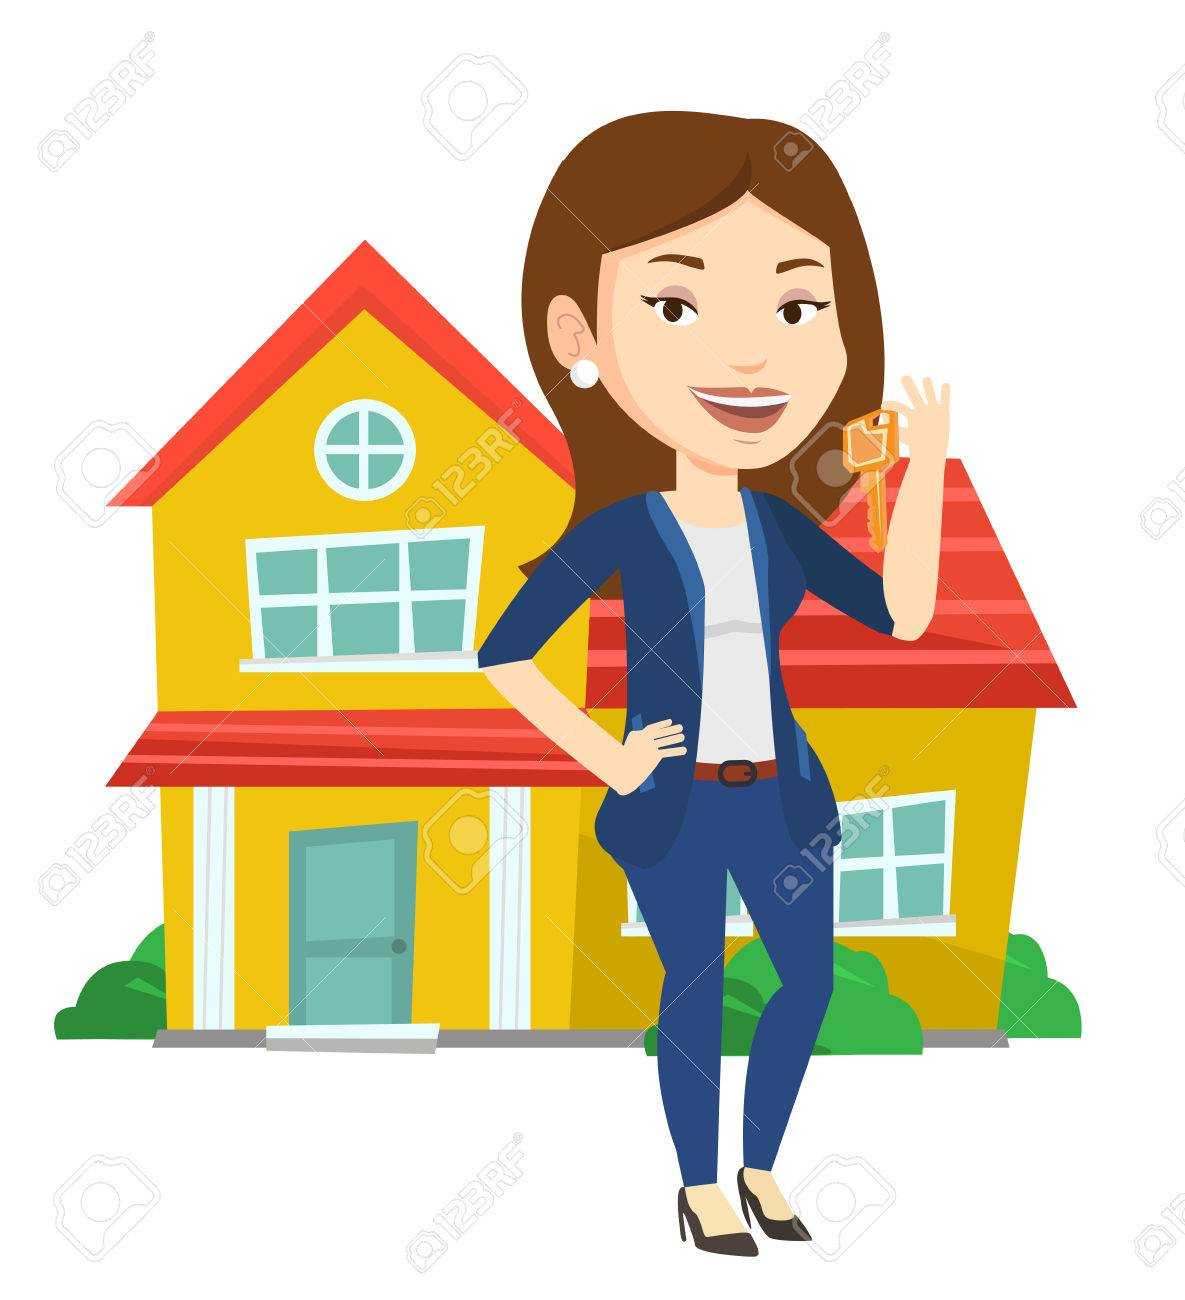 Real Estate Agent With Key Vector Illustration Royalty Free Cliparts Vectors And Stock Illustration Image 70565923